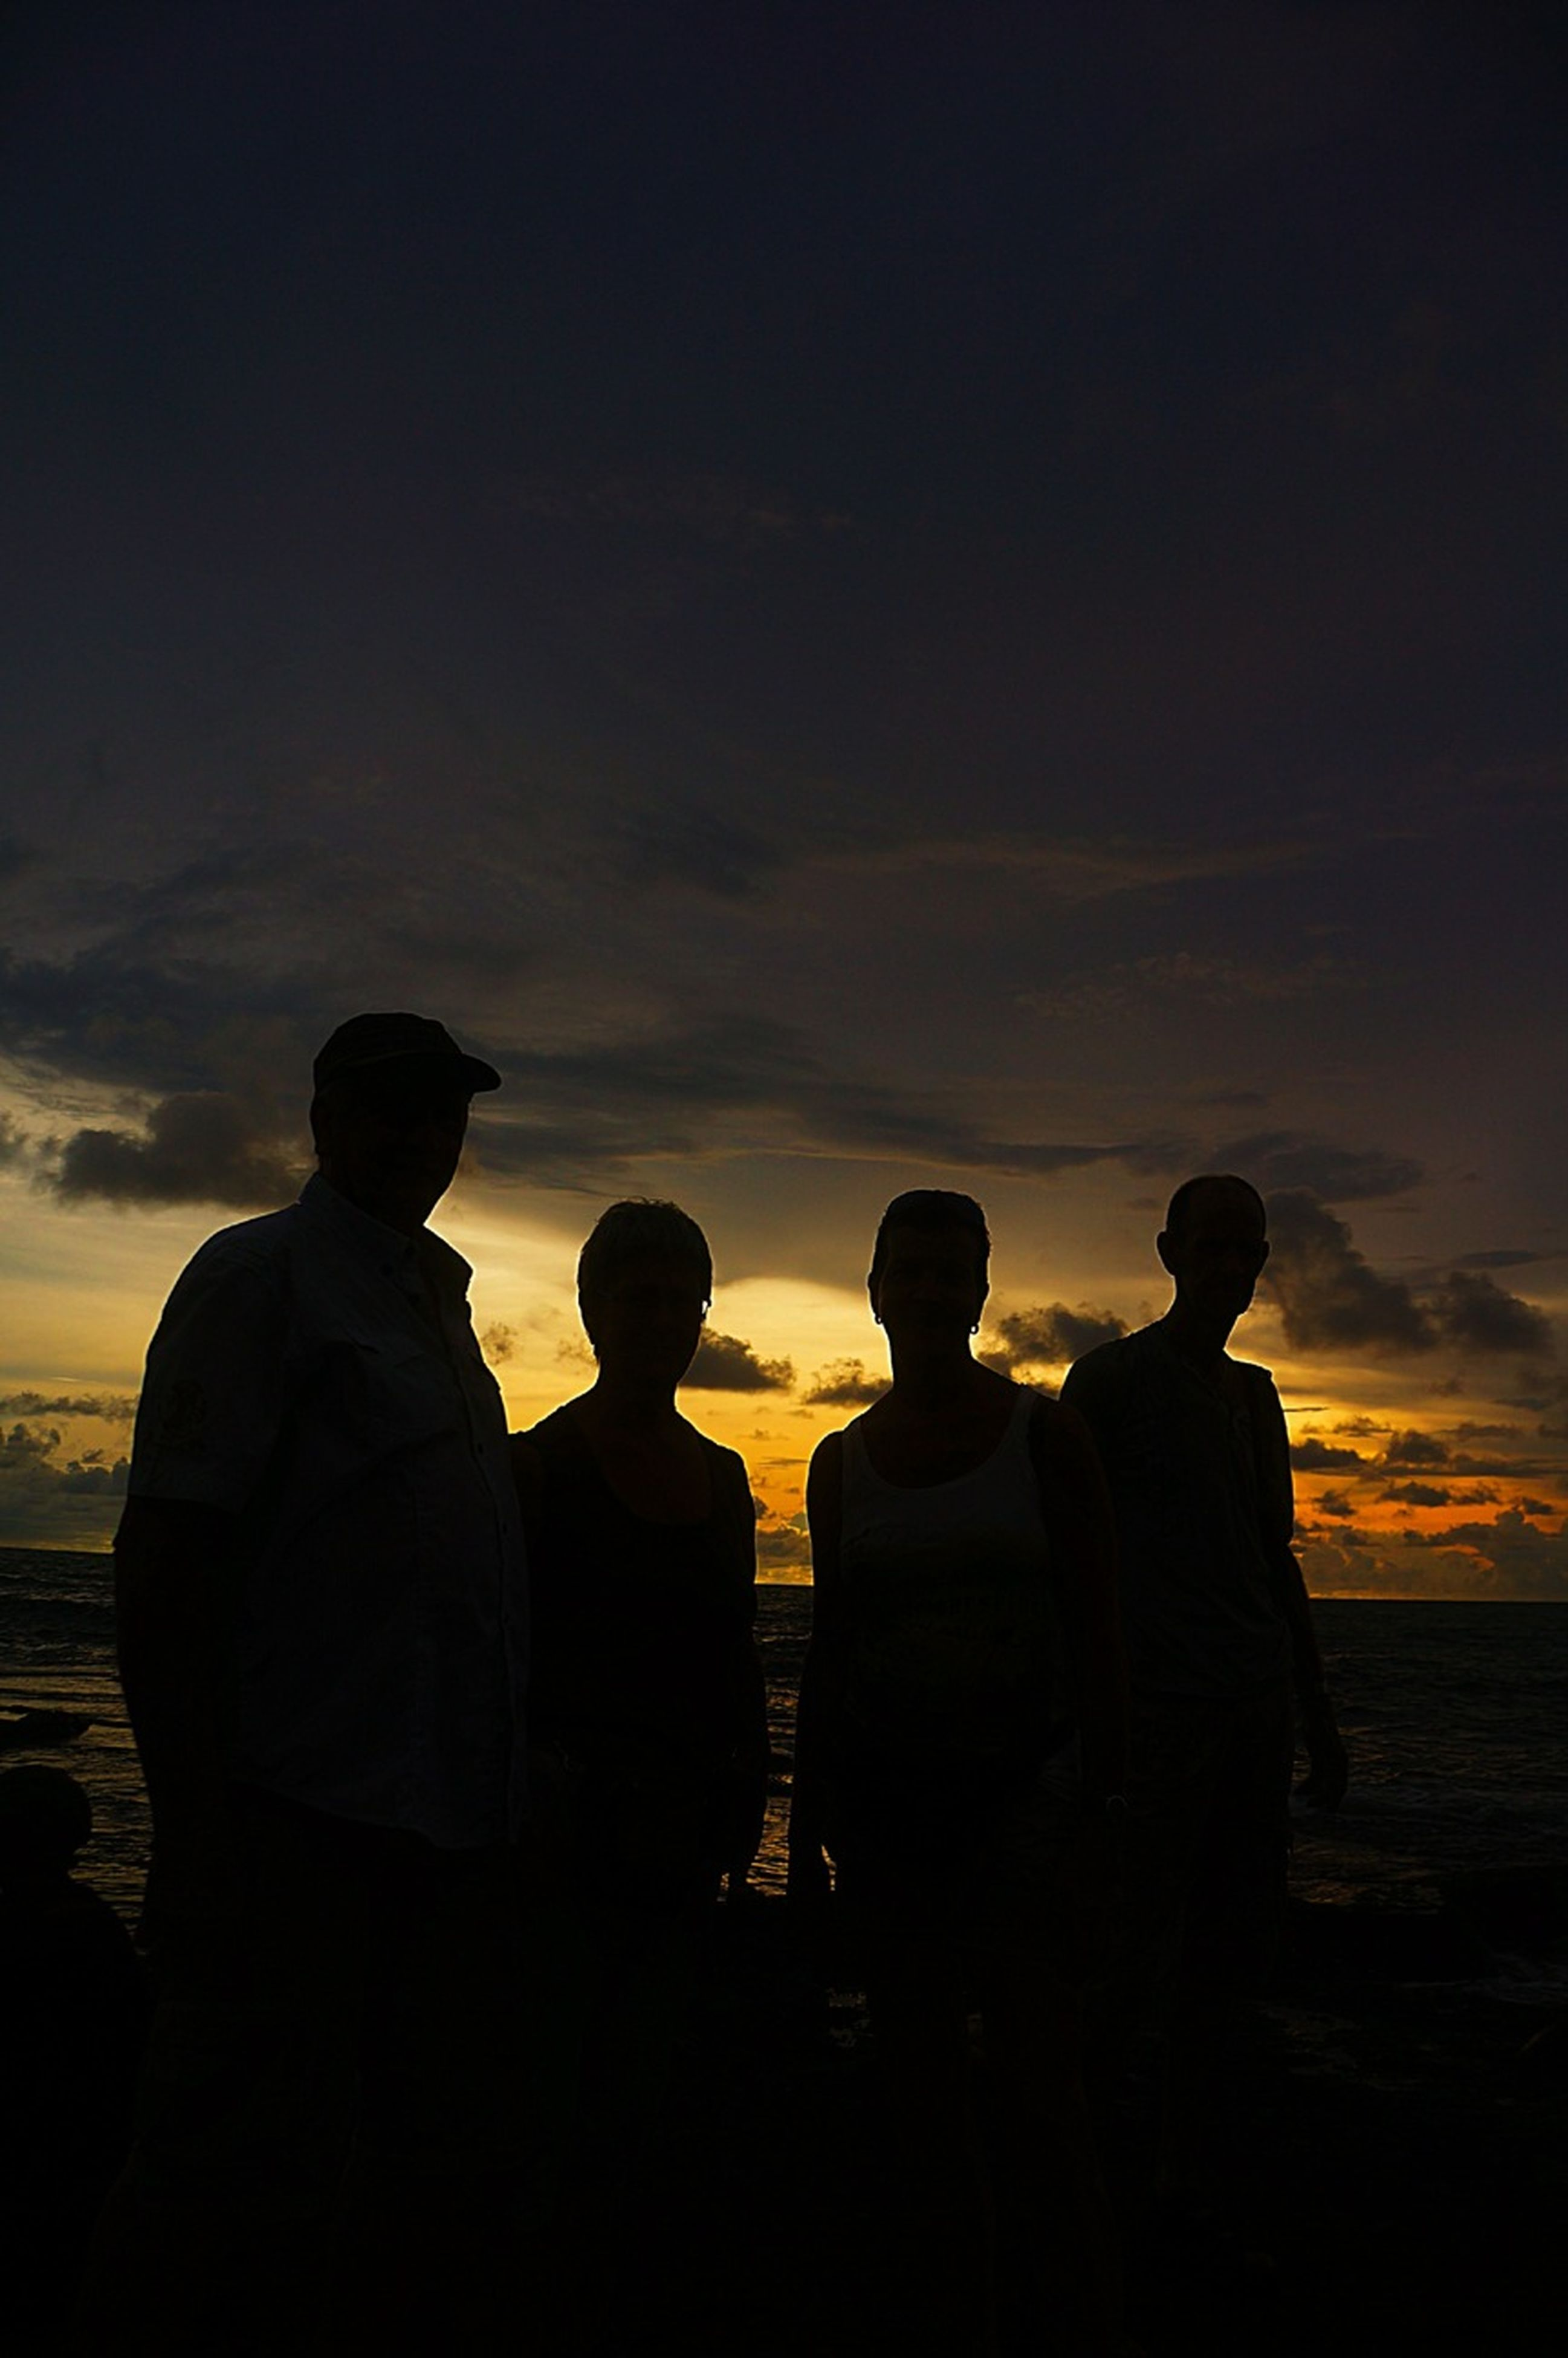 men, togetherness, silhouette, lifestyles, leisure activity, sunset, bonding, person, standing, sky, friendship, rear view, love, sitting, outdoors, medium group of people